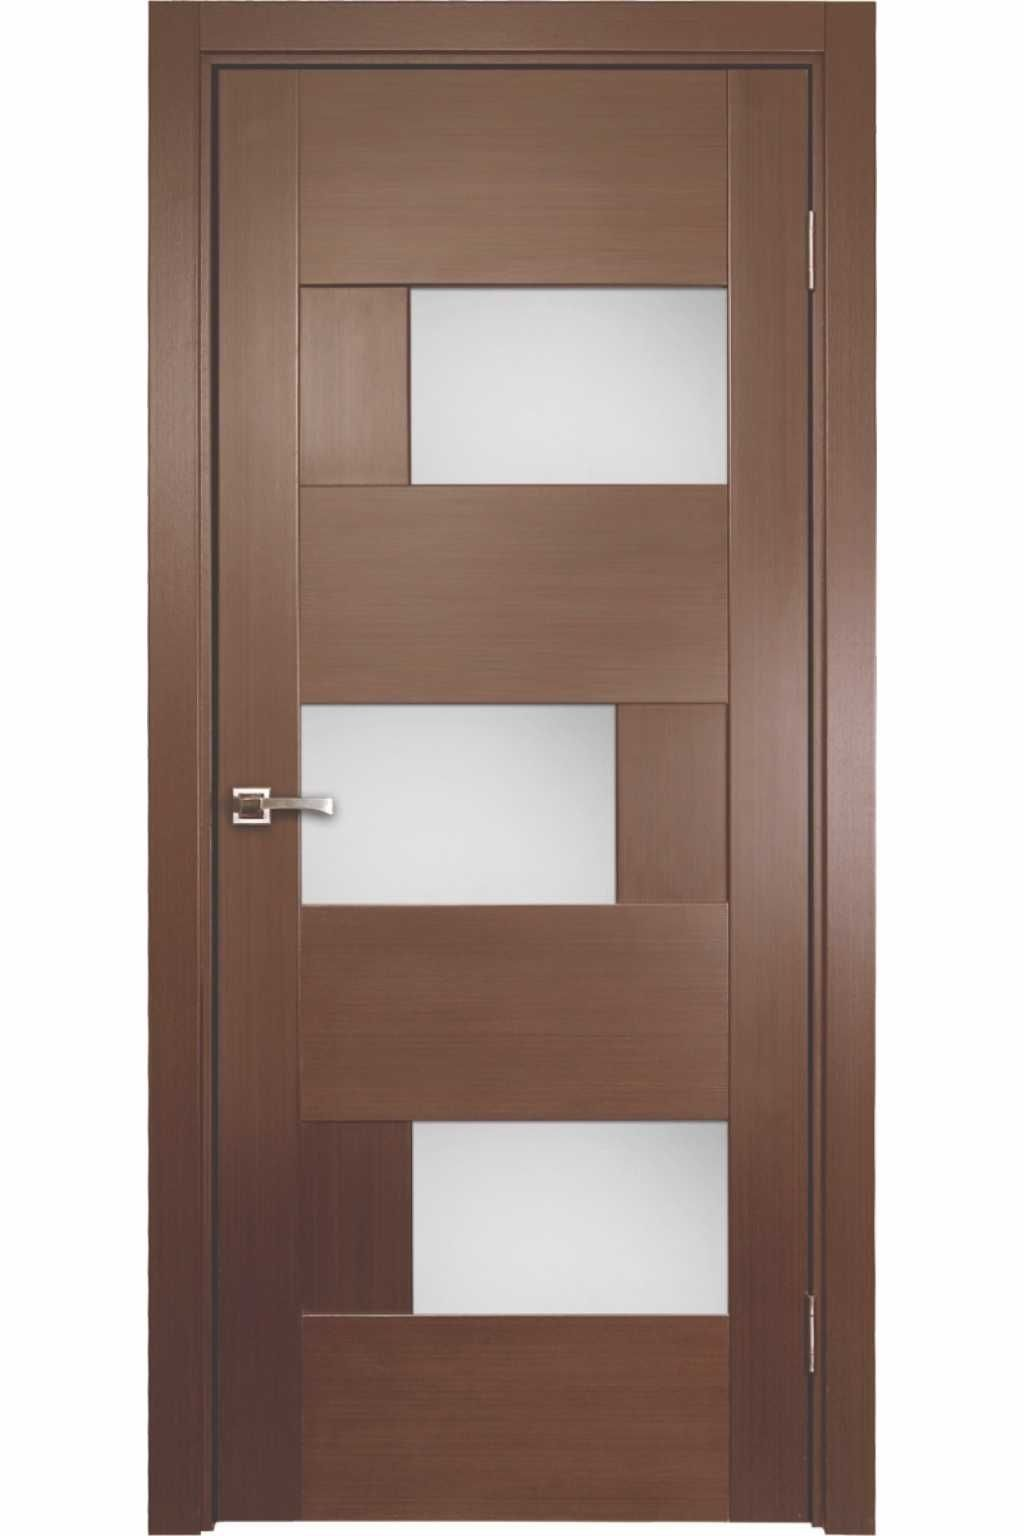 20 Best Modern Door Designs From Wood: Modern Bedroom Wooden Door Designs Http://zoladecor.com